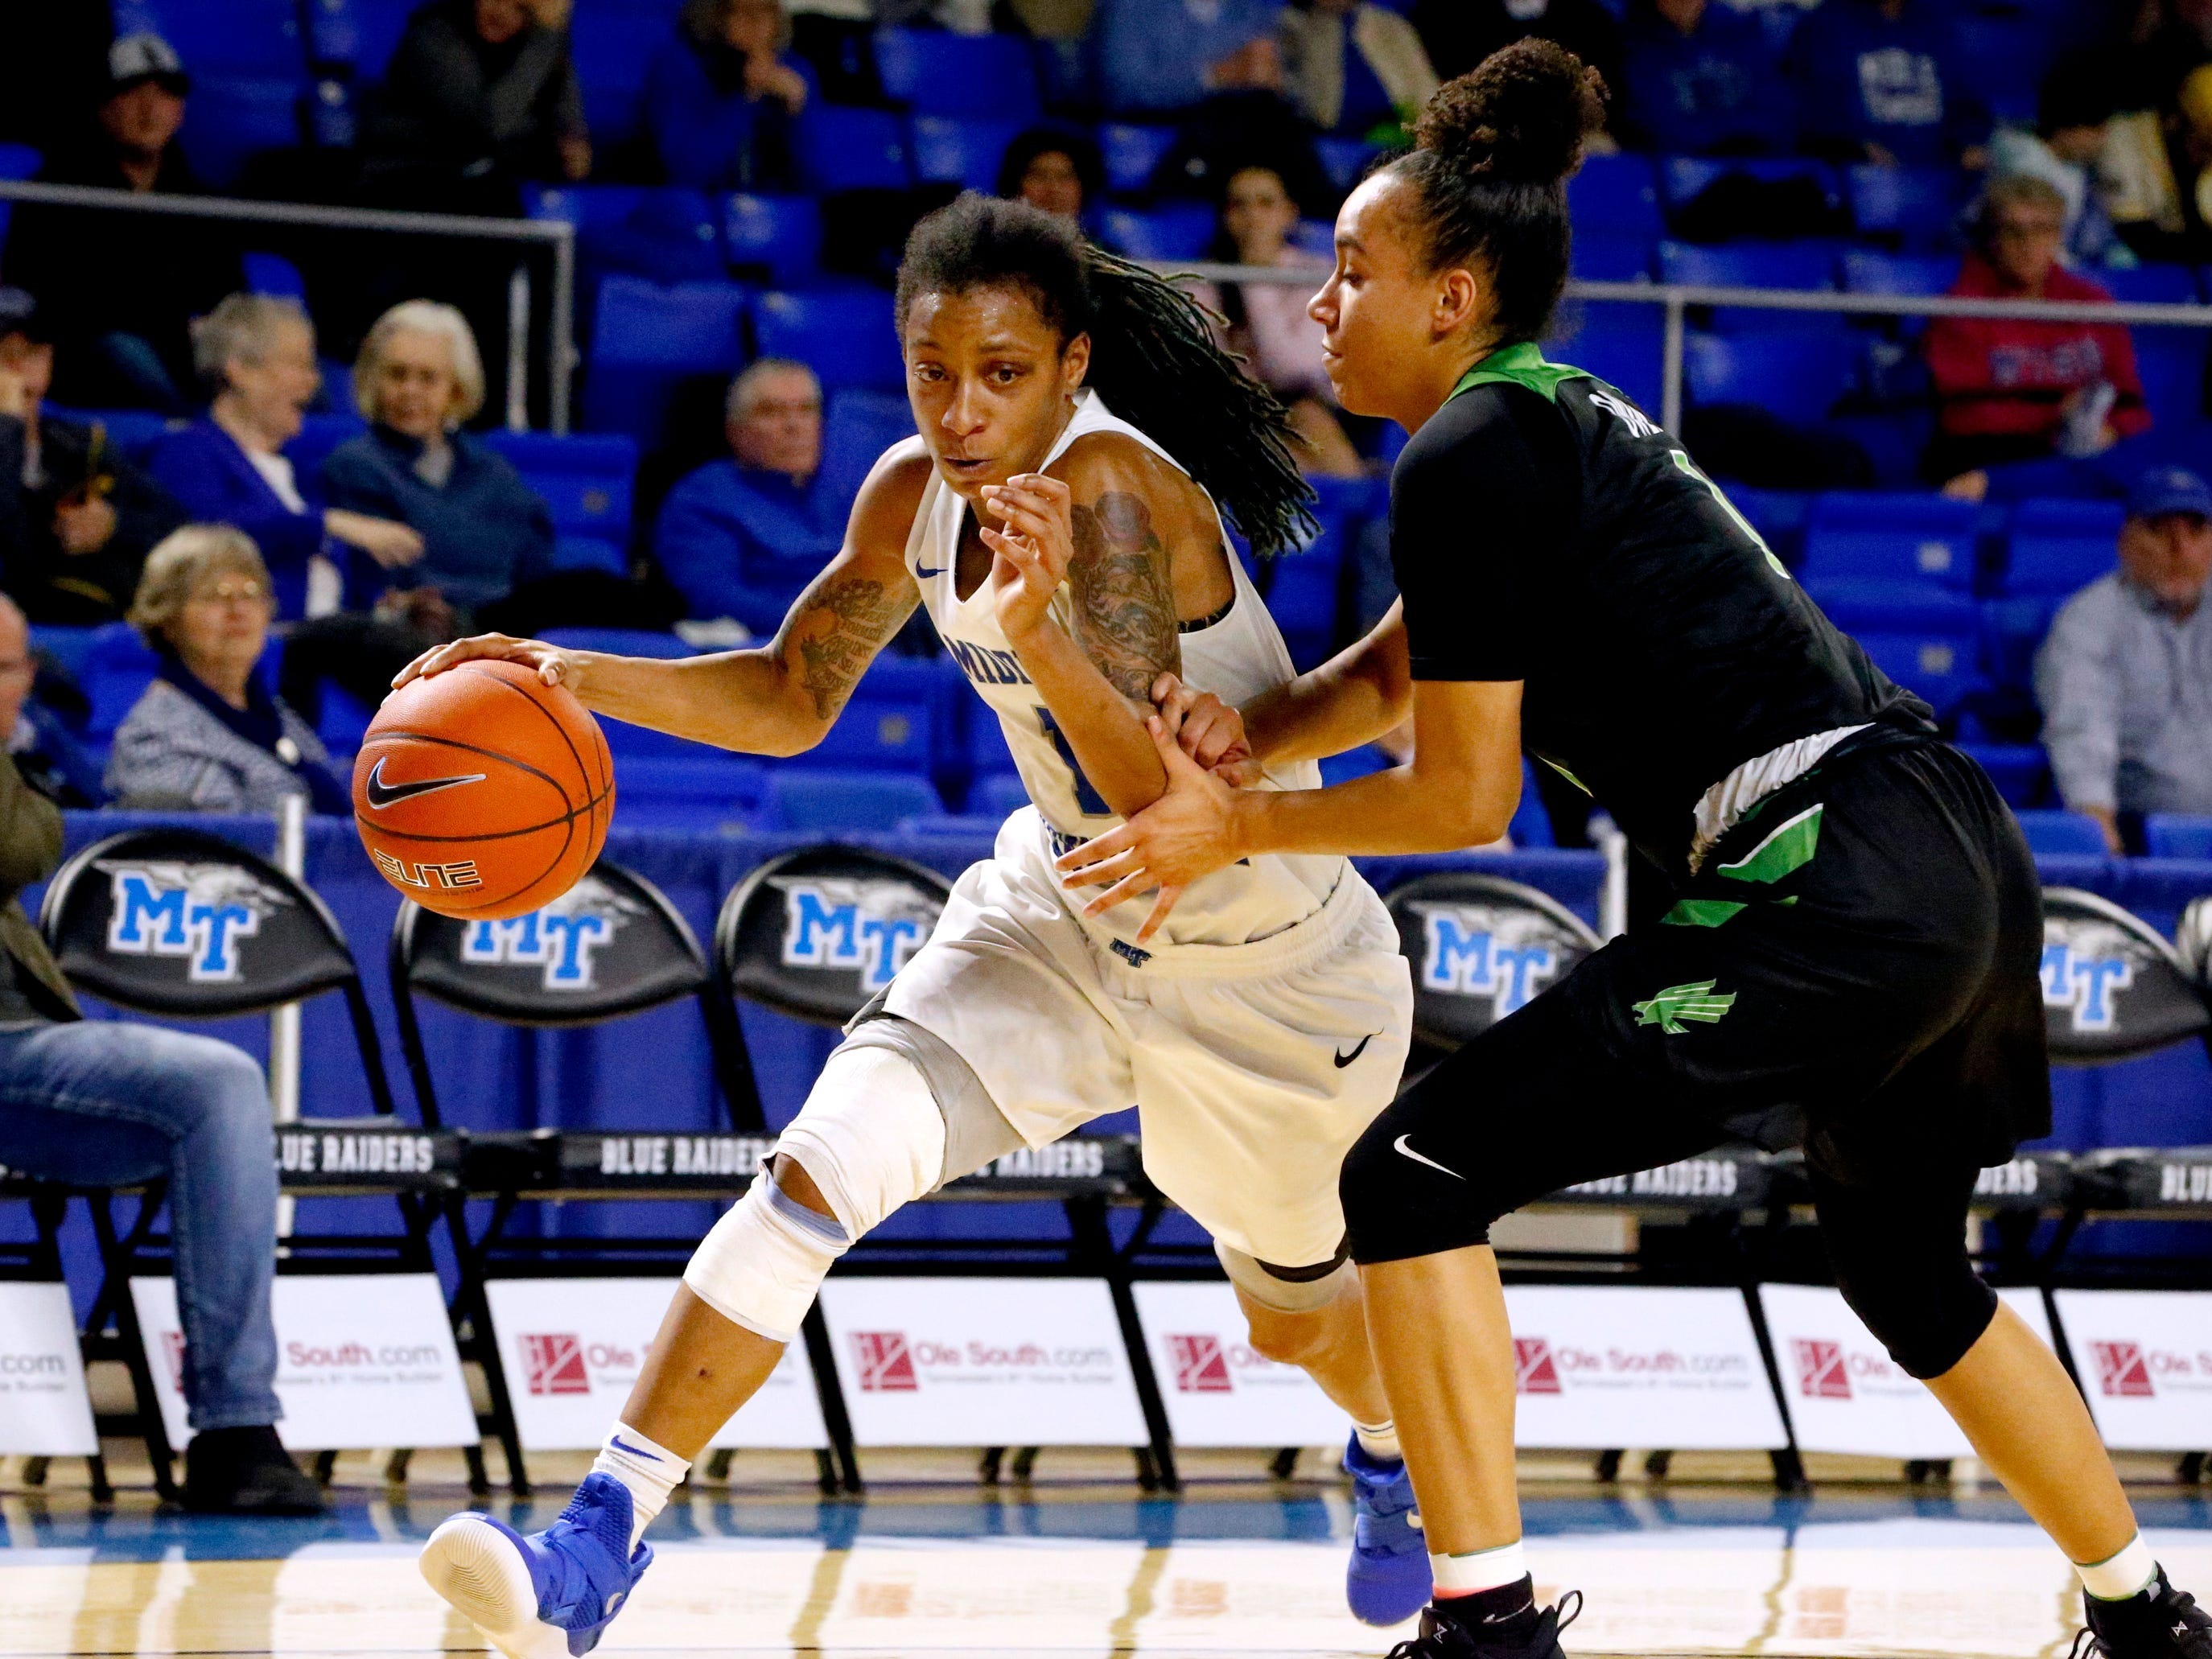 MTSU's guard A'Queen Hayes (1) moves the ball around the court as North Texas' guard Callie Owens (1) covers hr on Saturday Jan. 26, 2019.